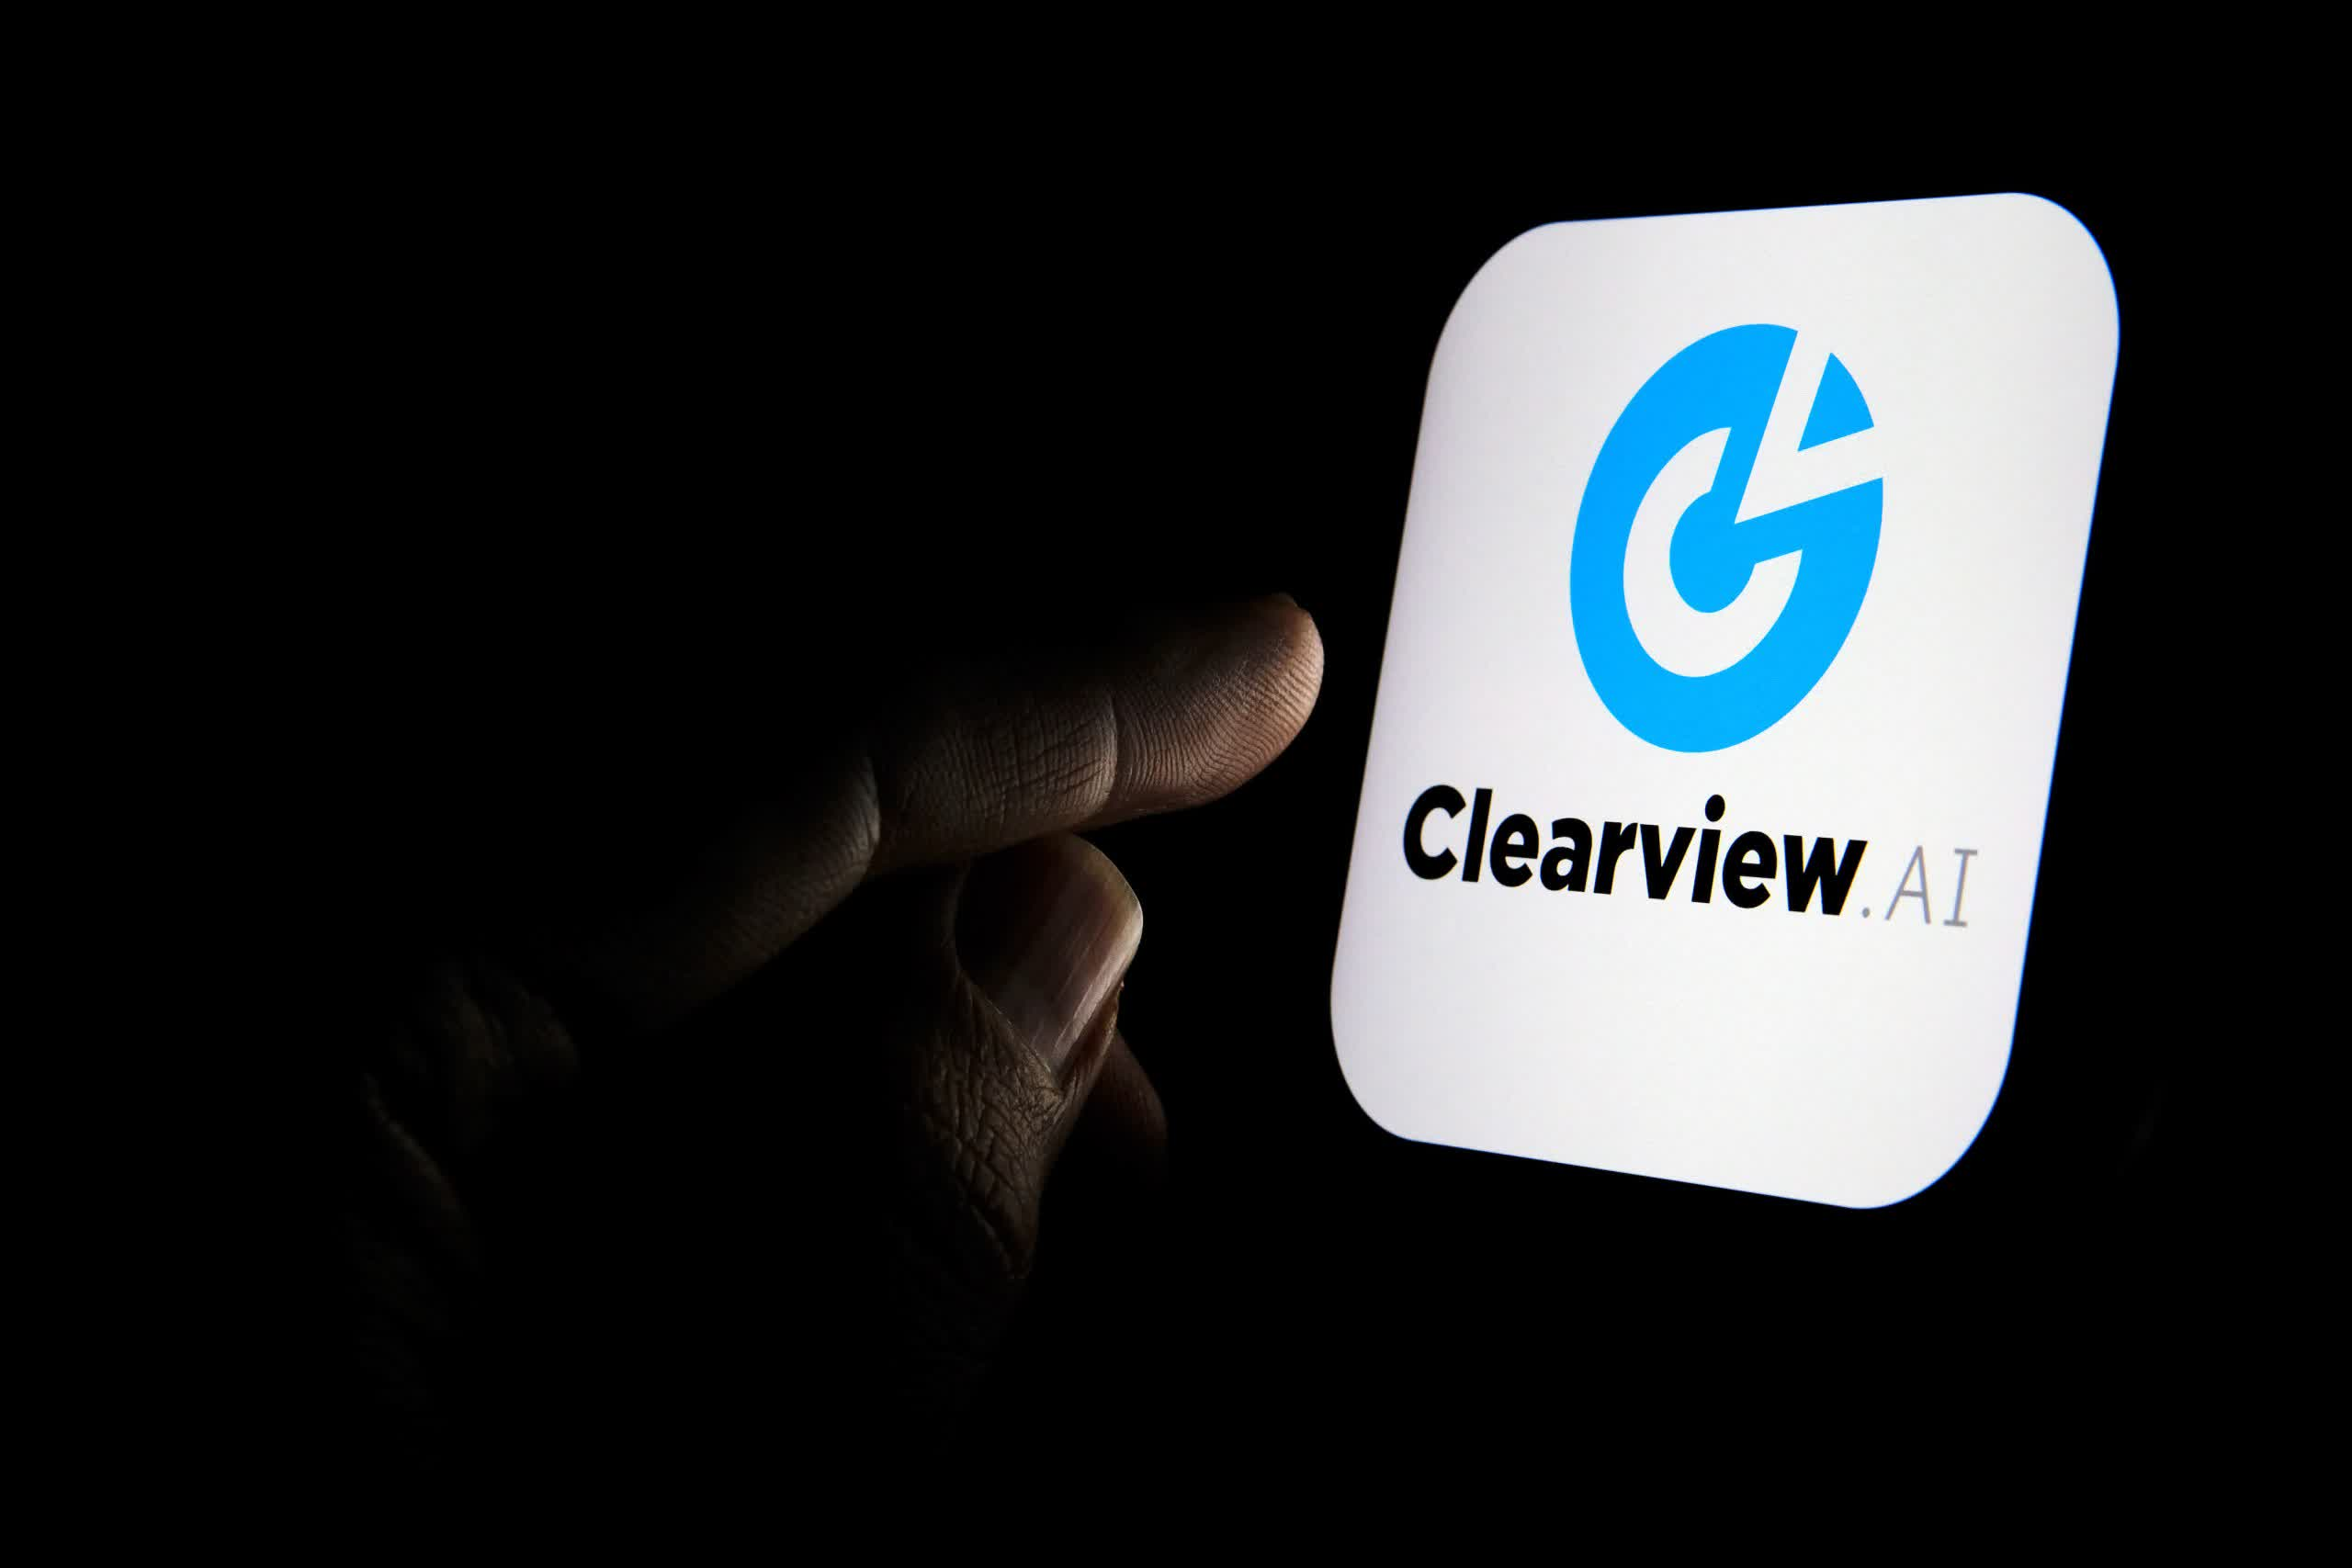 Privacy watchdogs take legal action against Clearview AI in five countries